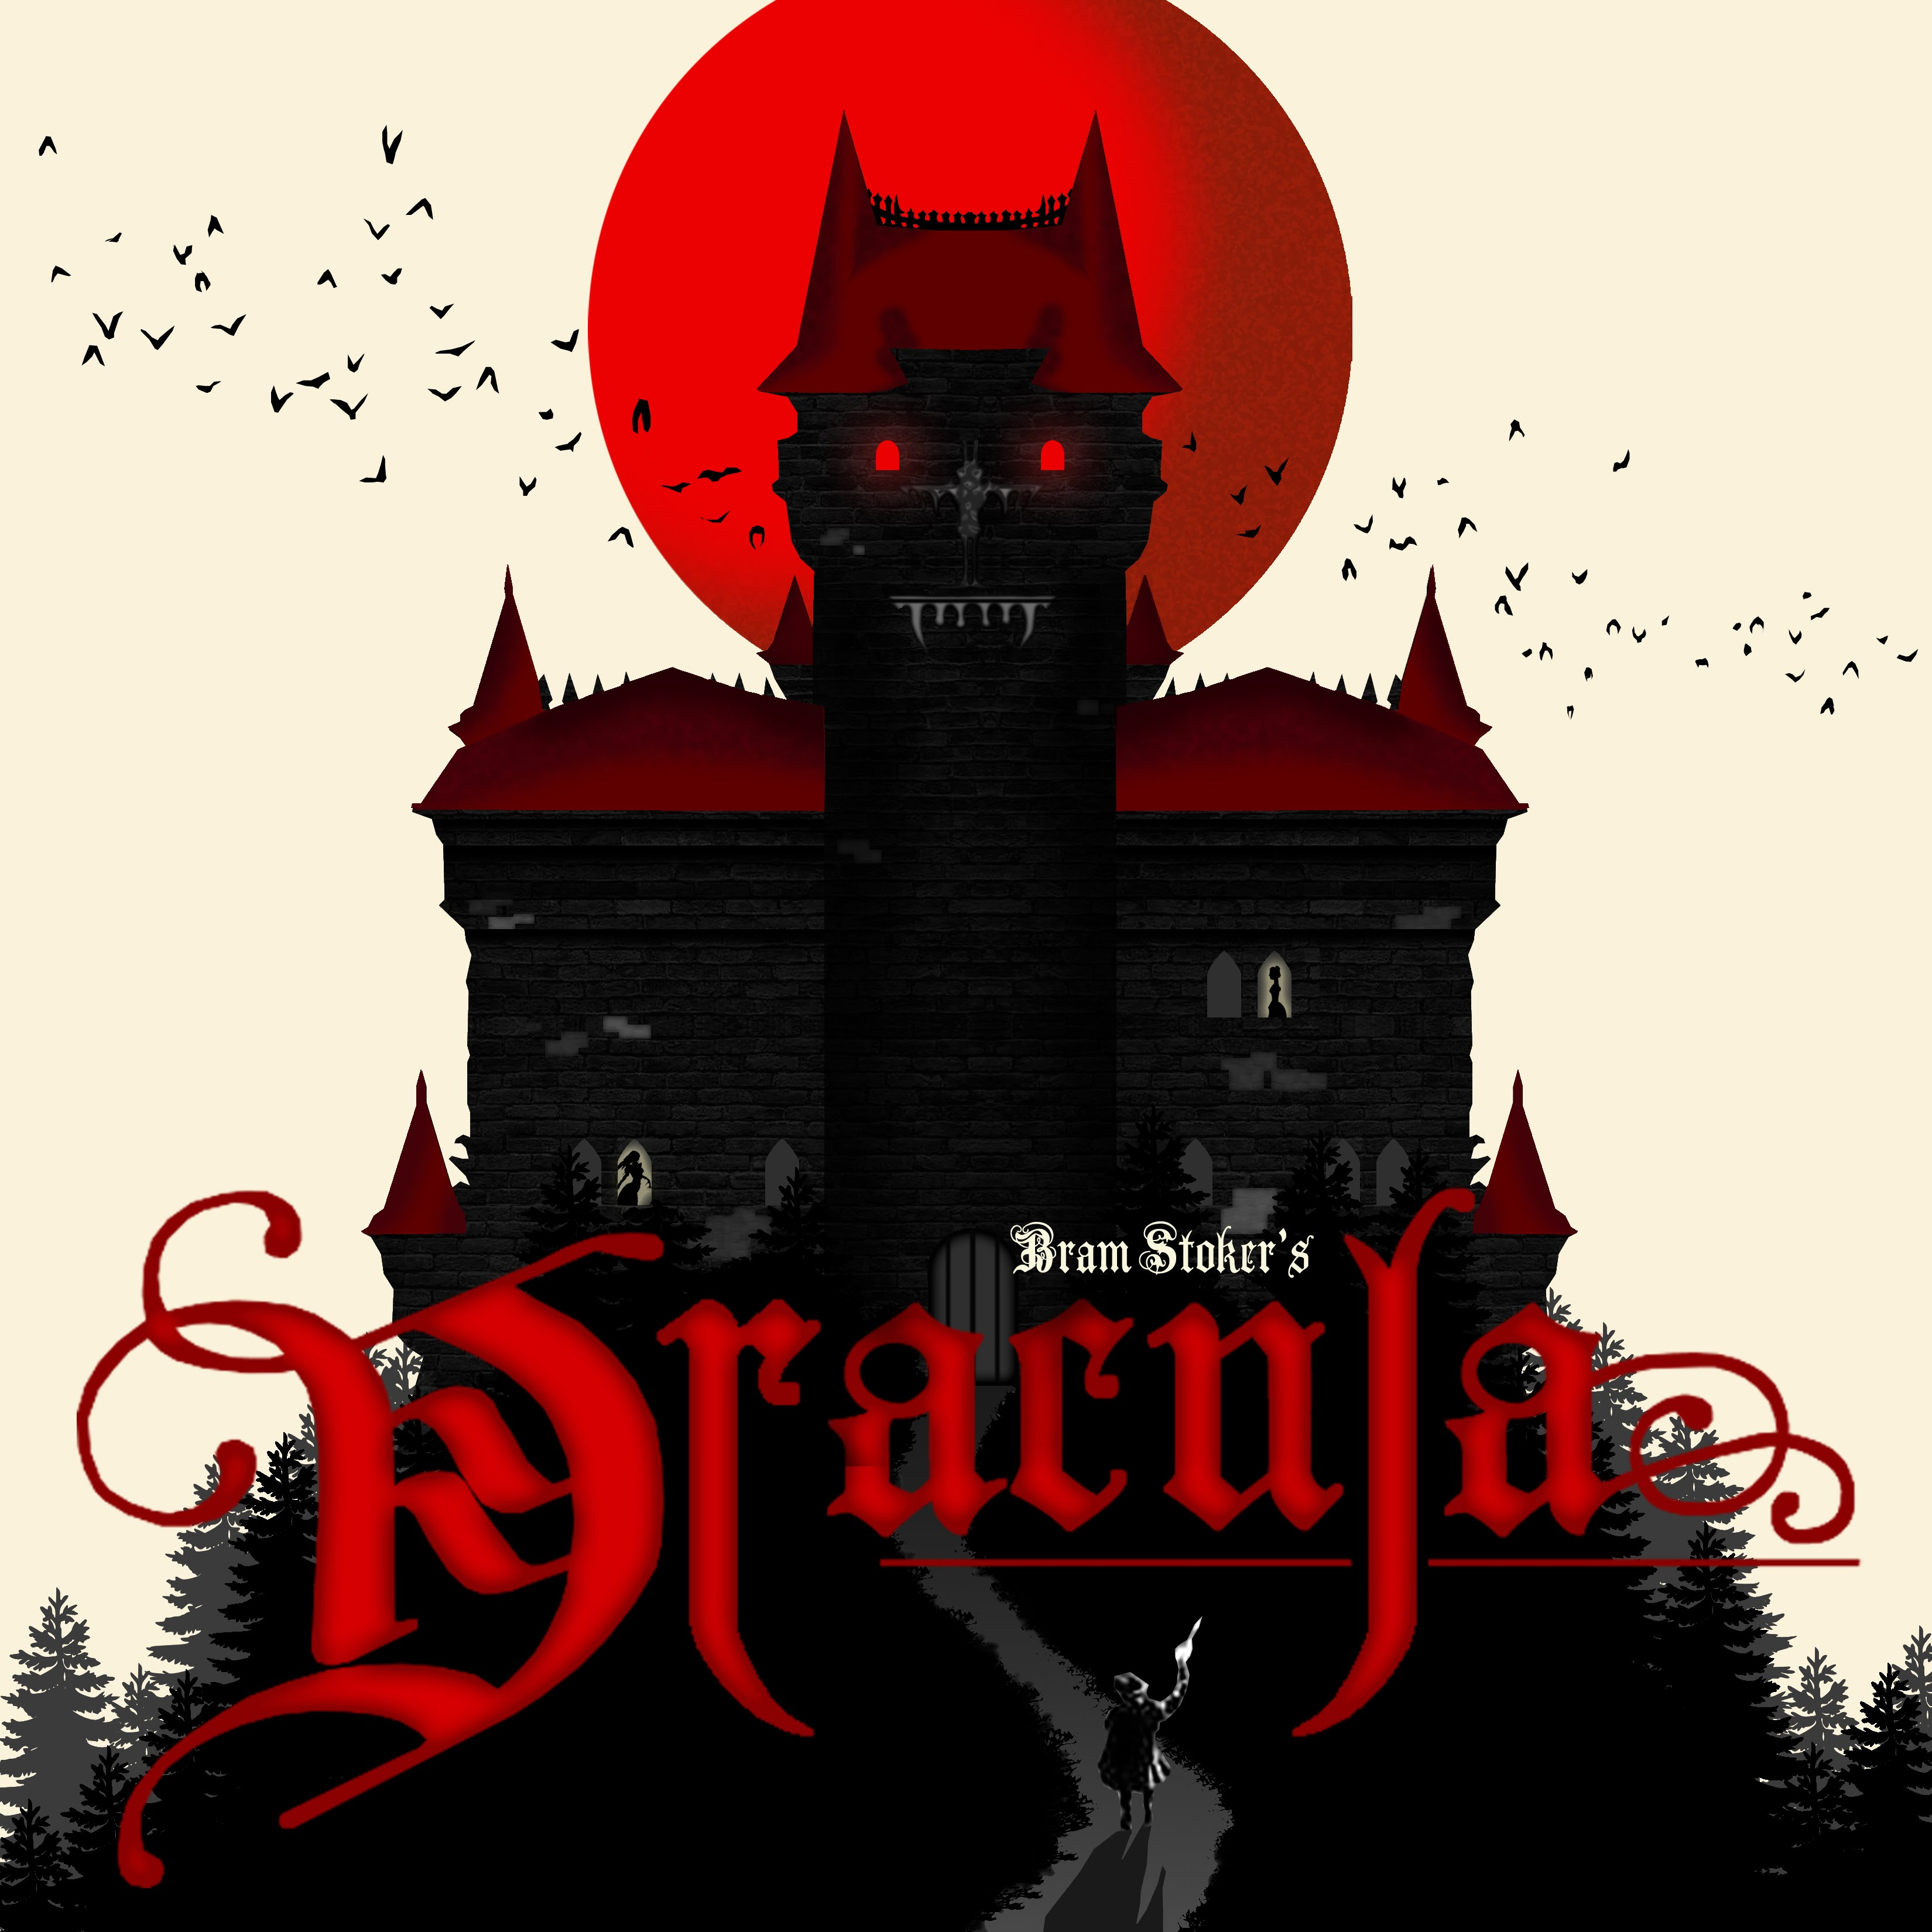 http://www.interactproductions.org/dracula